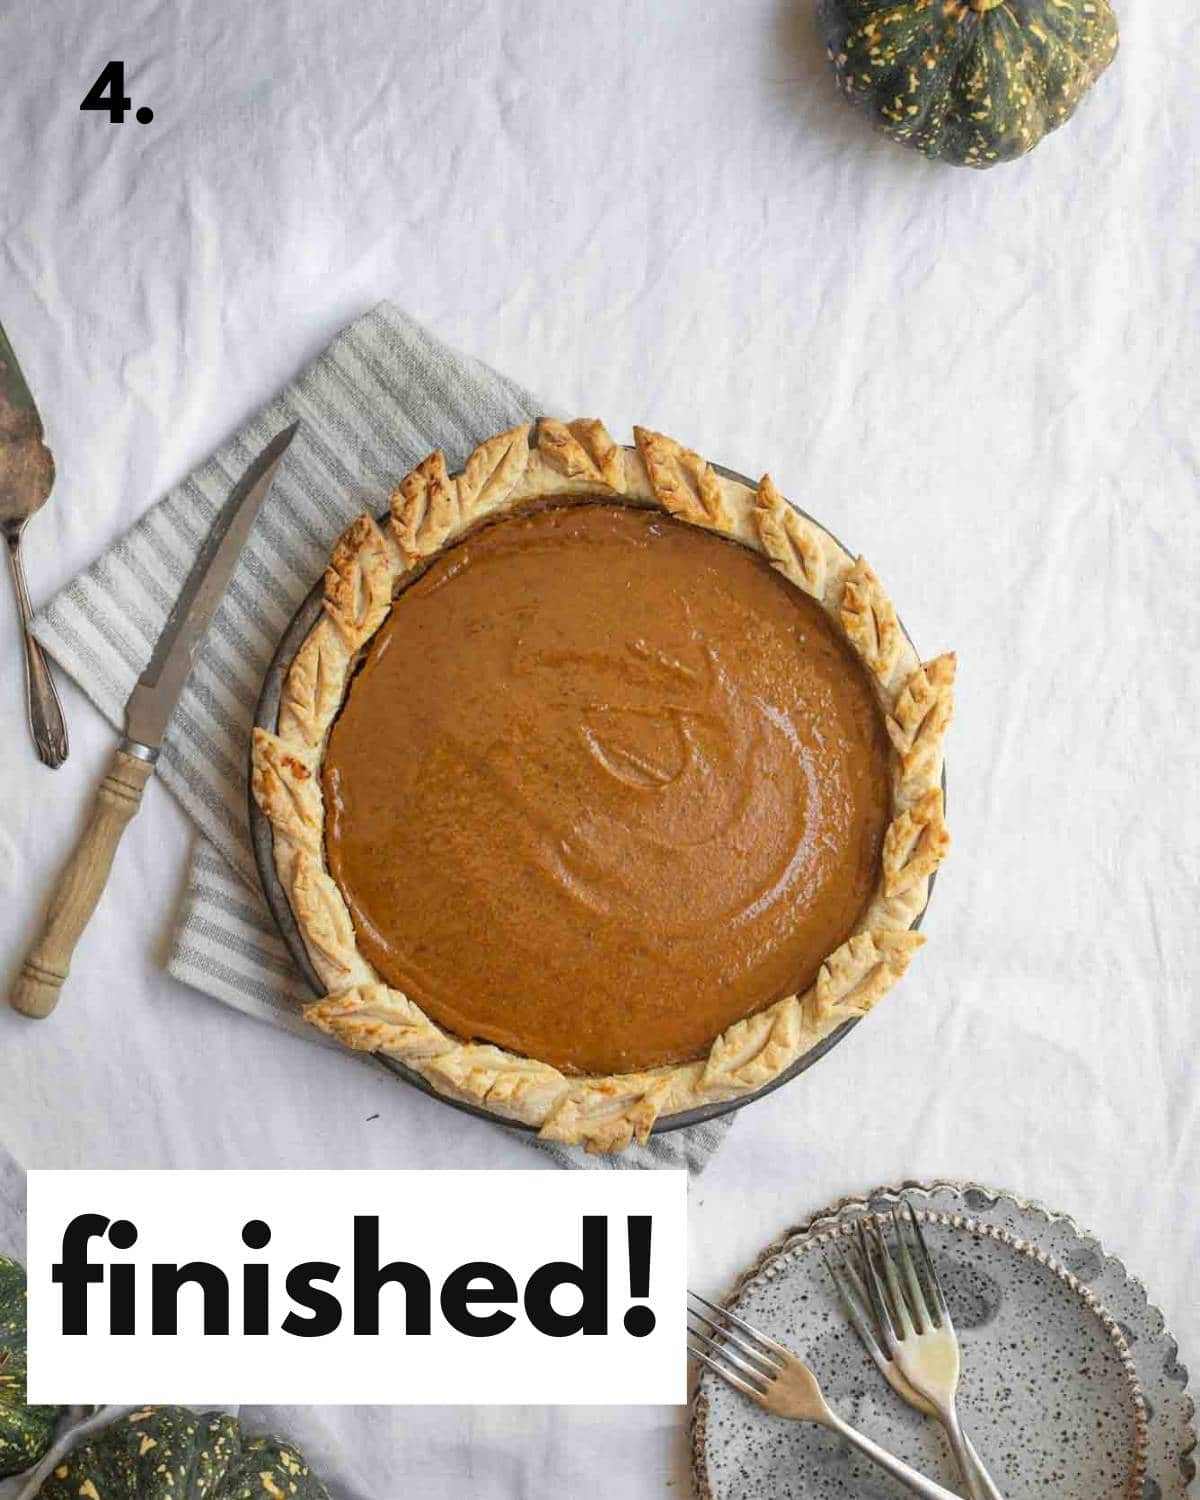 Finished pumpkin pie sitting on a table.